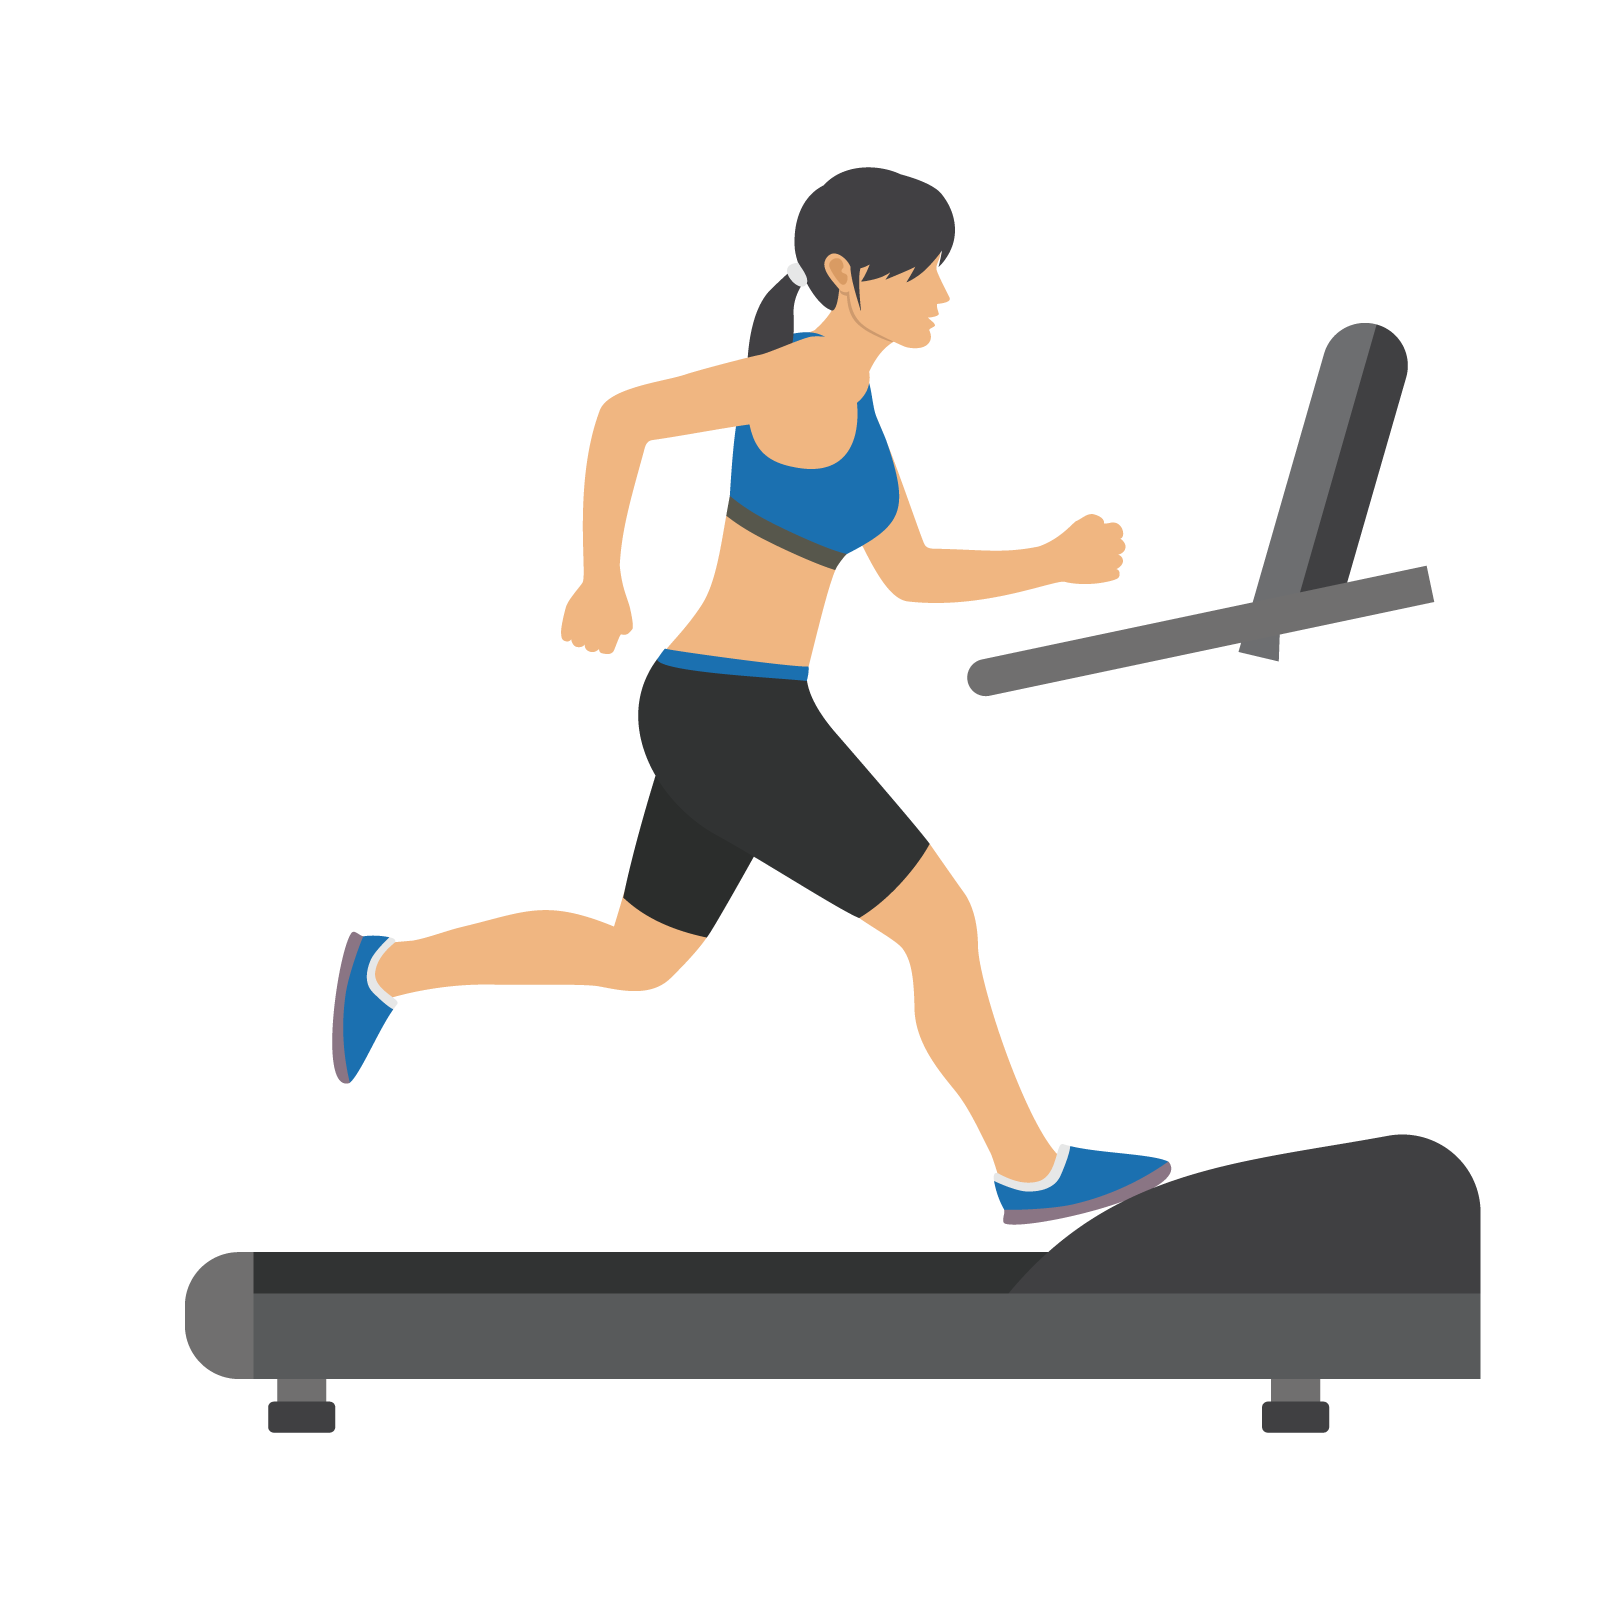 Exercise clipart running machine. How to avoid treadmill